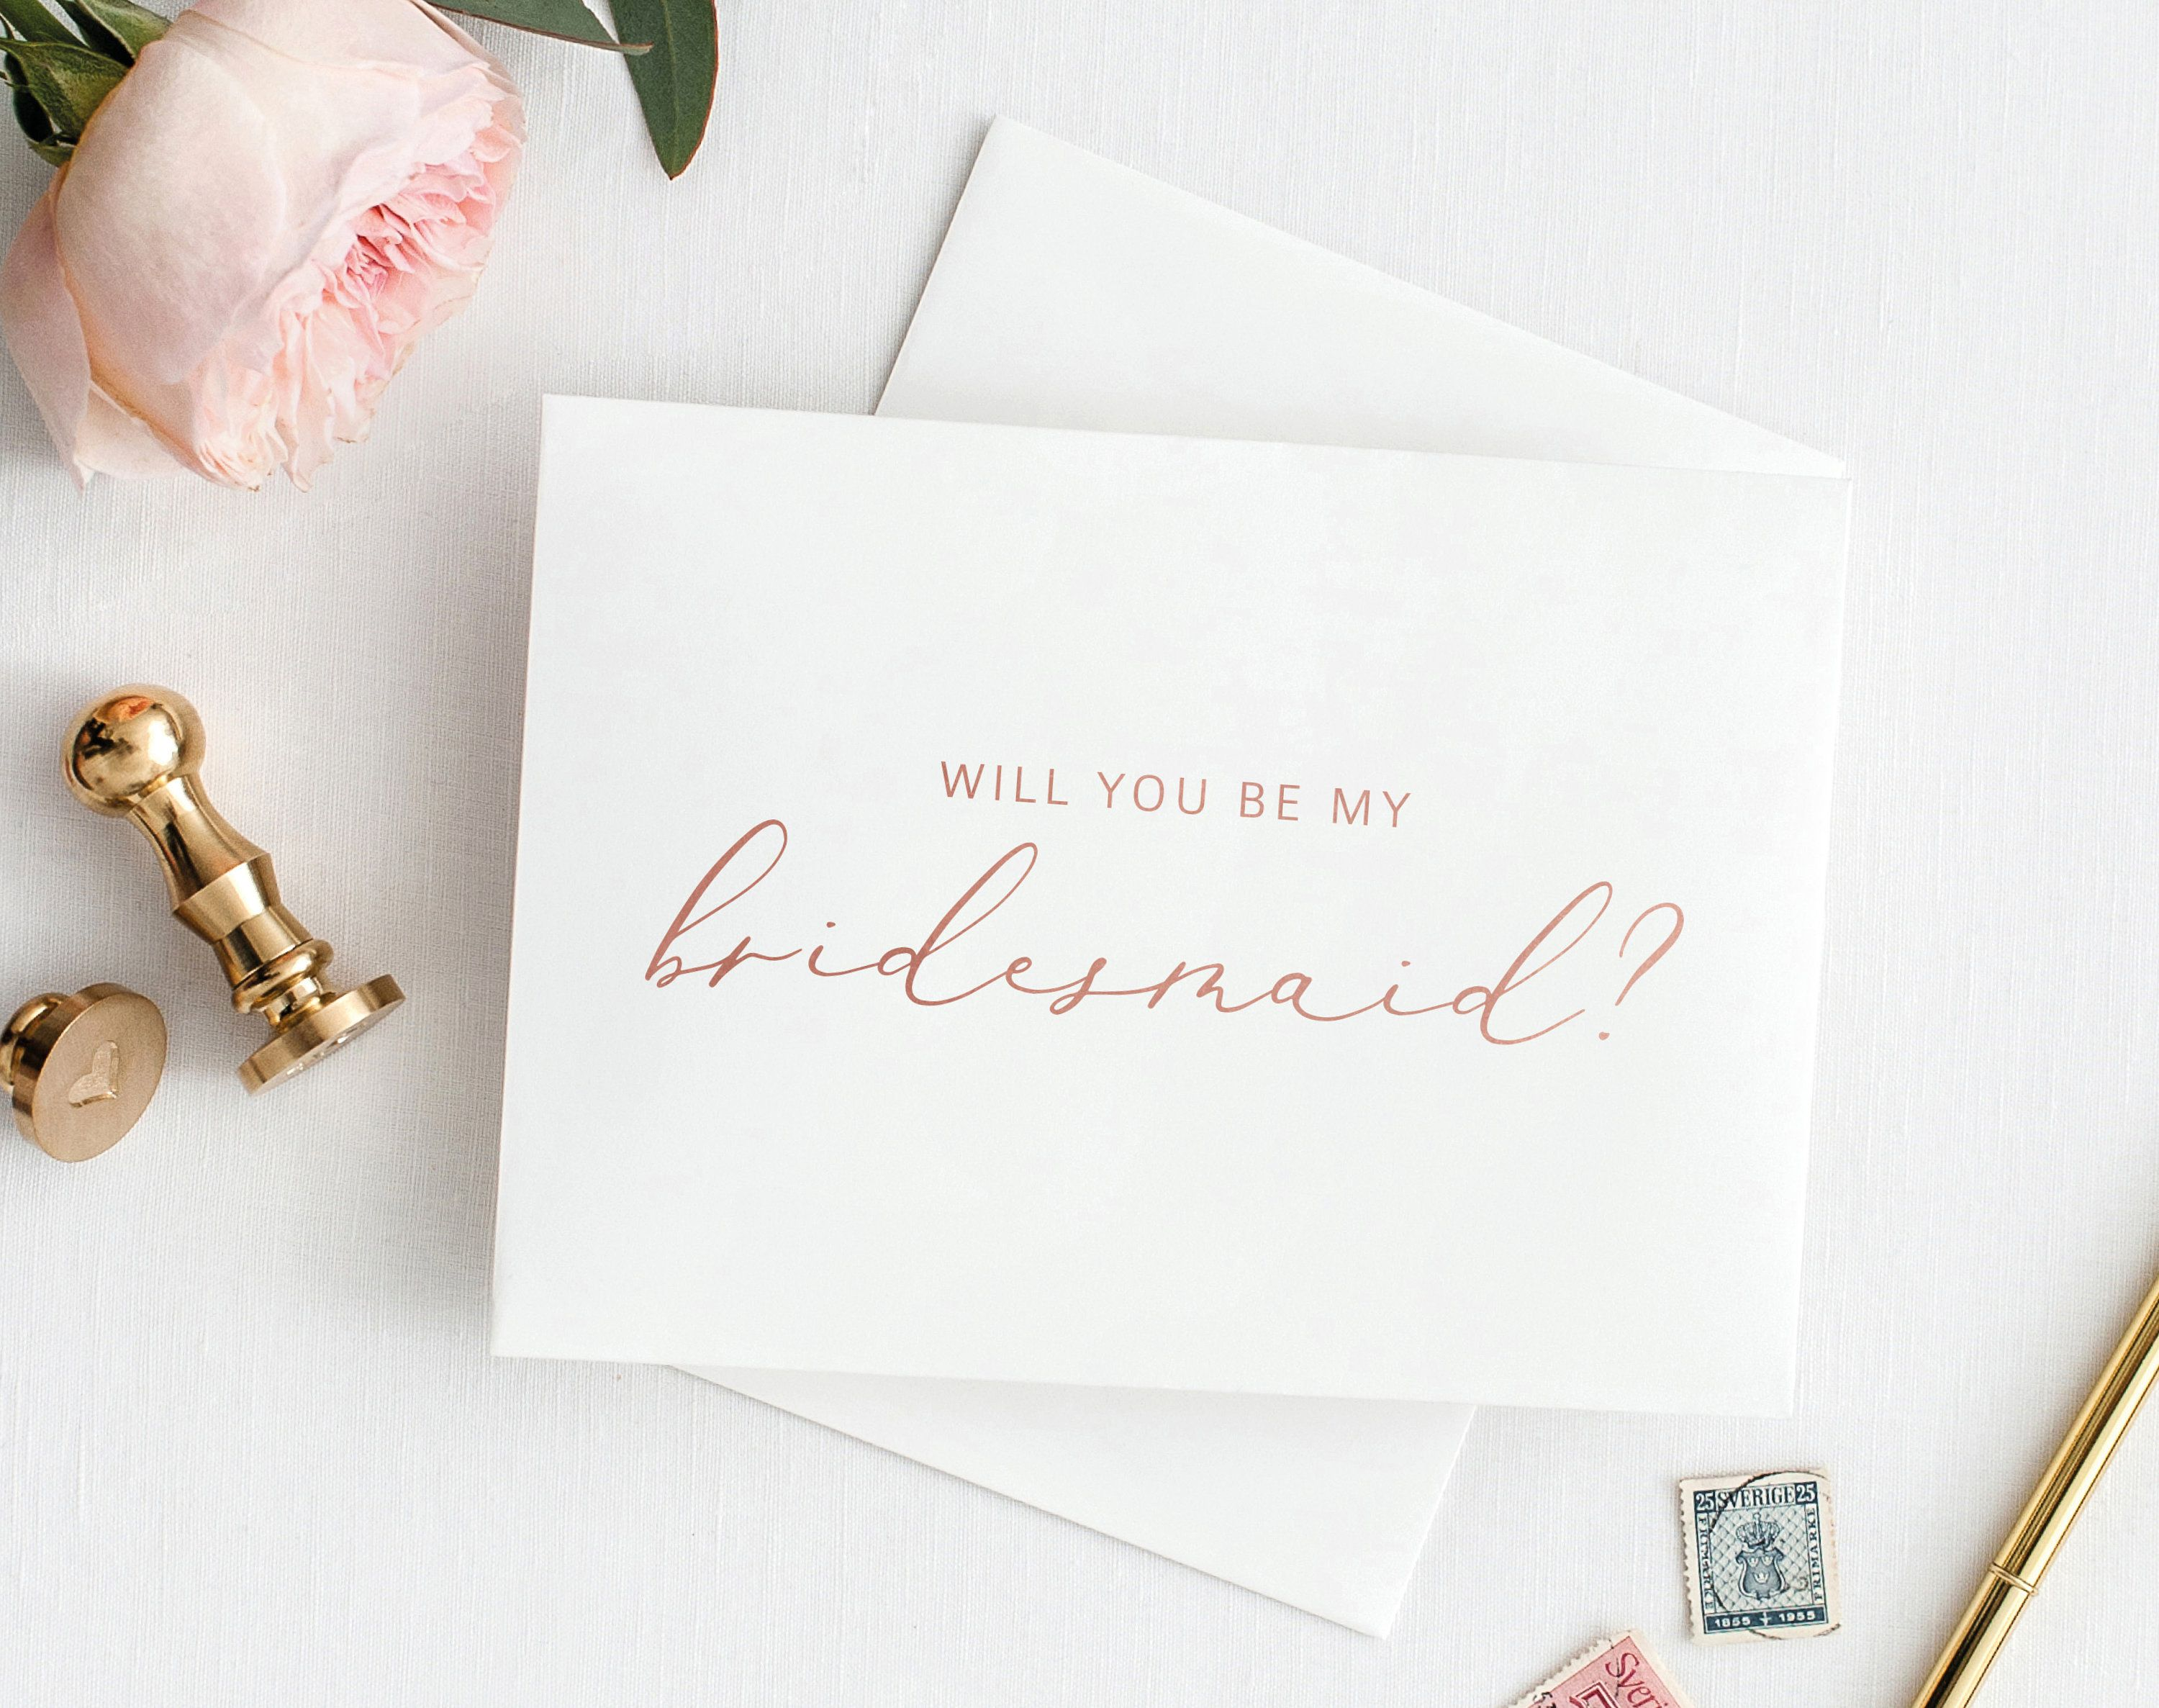 Will You Be My Bridesmaid Card Printable Bridesmaid Card Template Printable Card To Bridesmaid Rose Gold Pdf Instant Download Mm08 2 Wedding Note Cards Be My Bridesmaid Cards Bridesmaid Cards